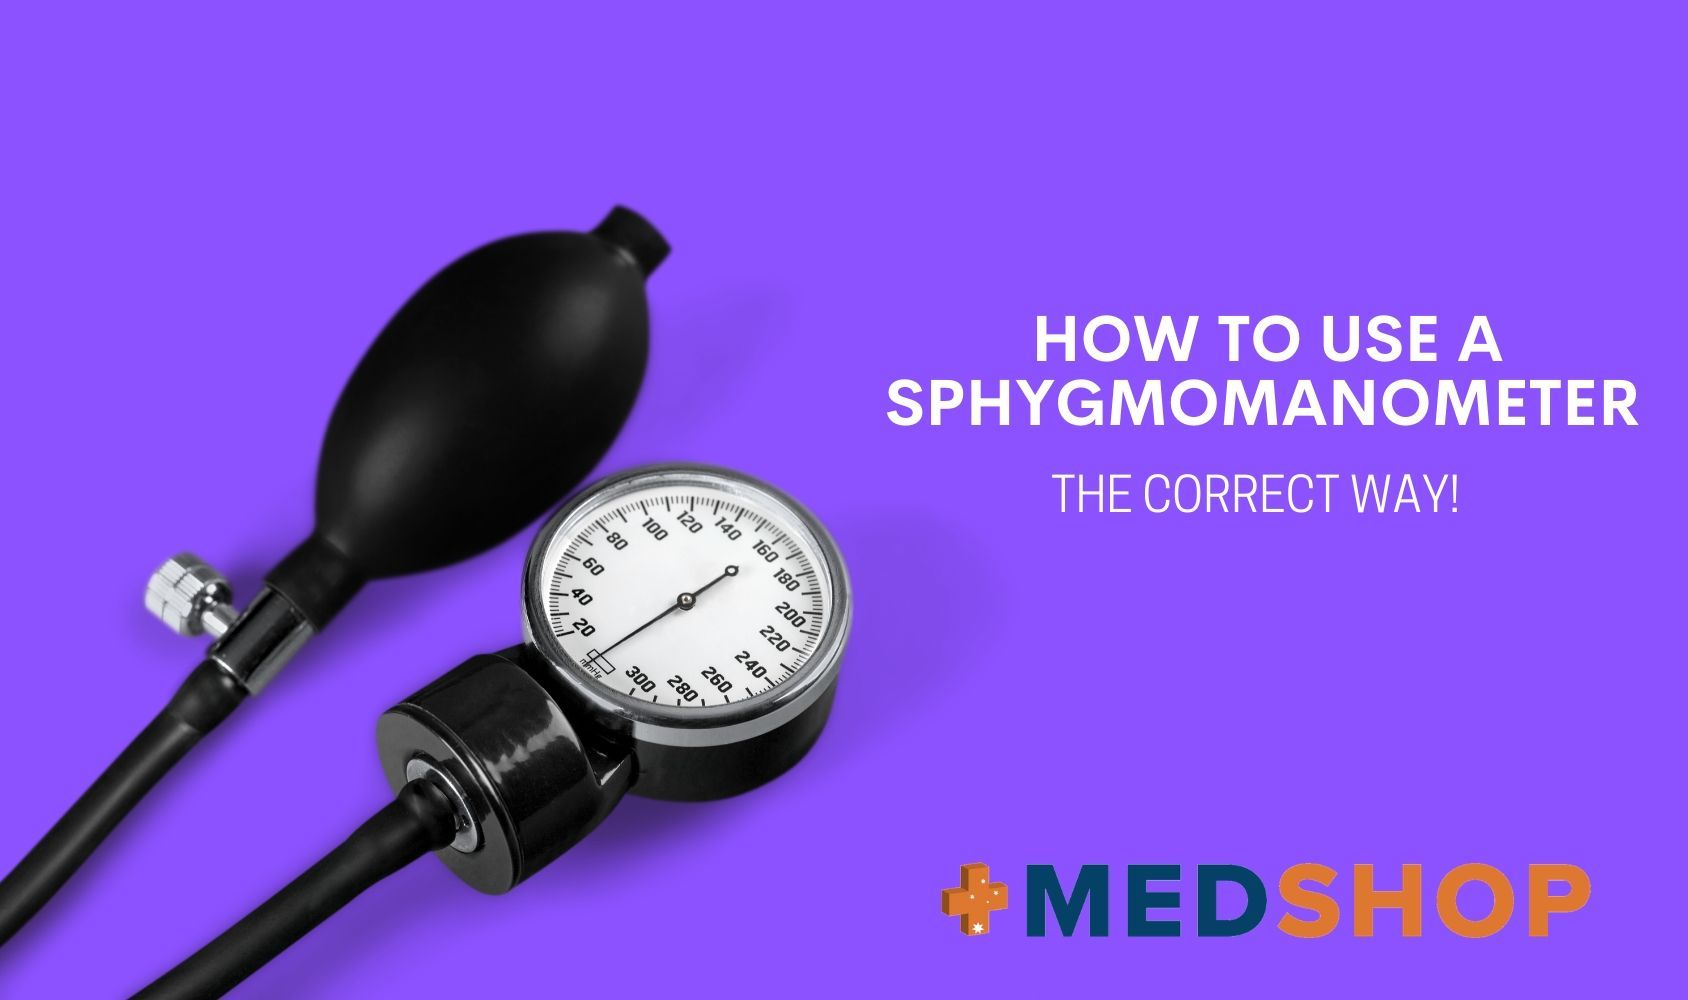 How to Use a Sphygmomanometer the Correct Way